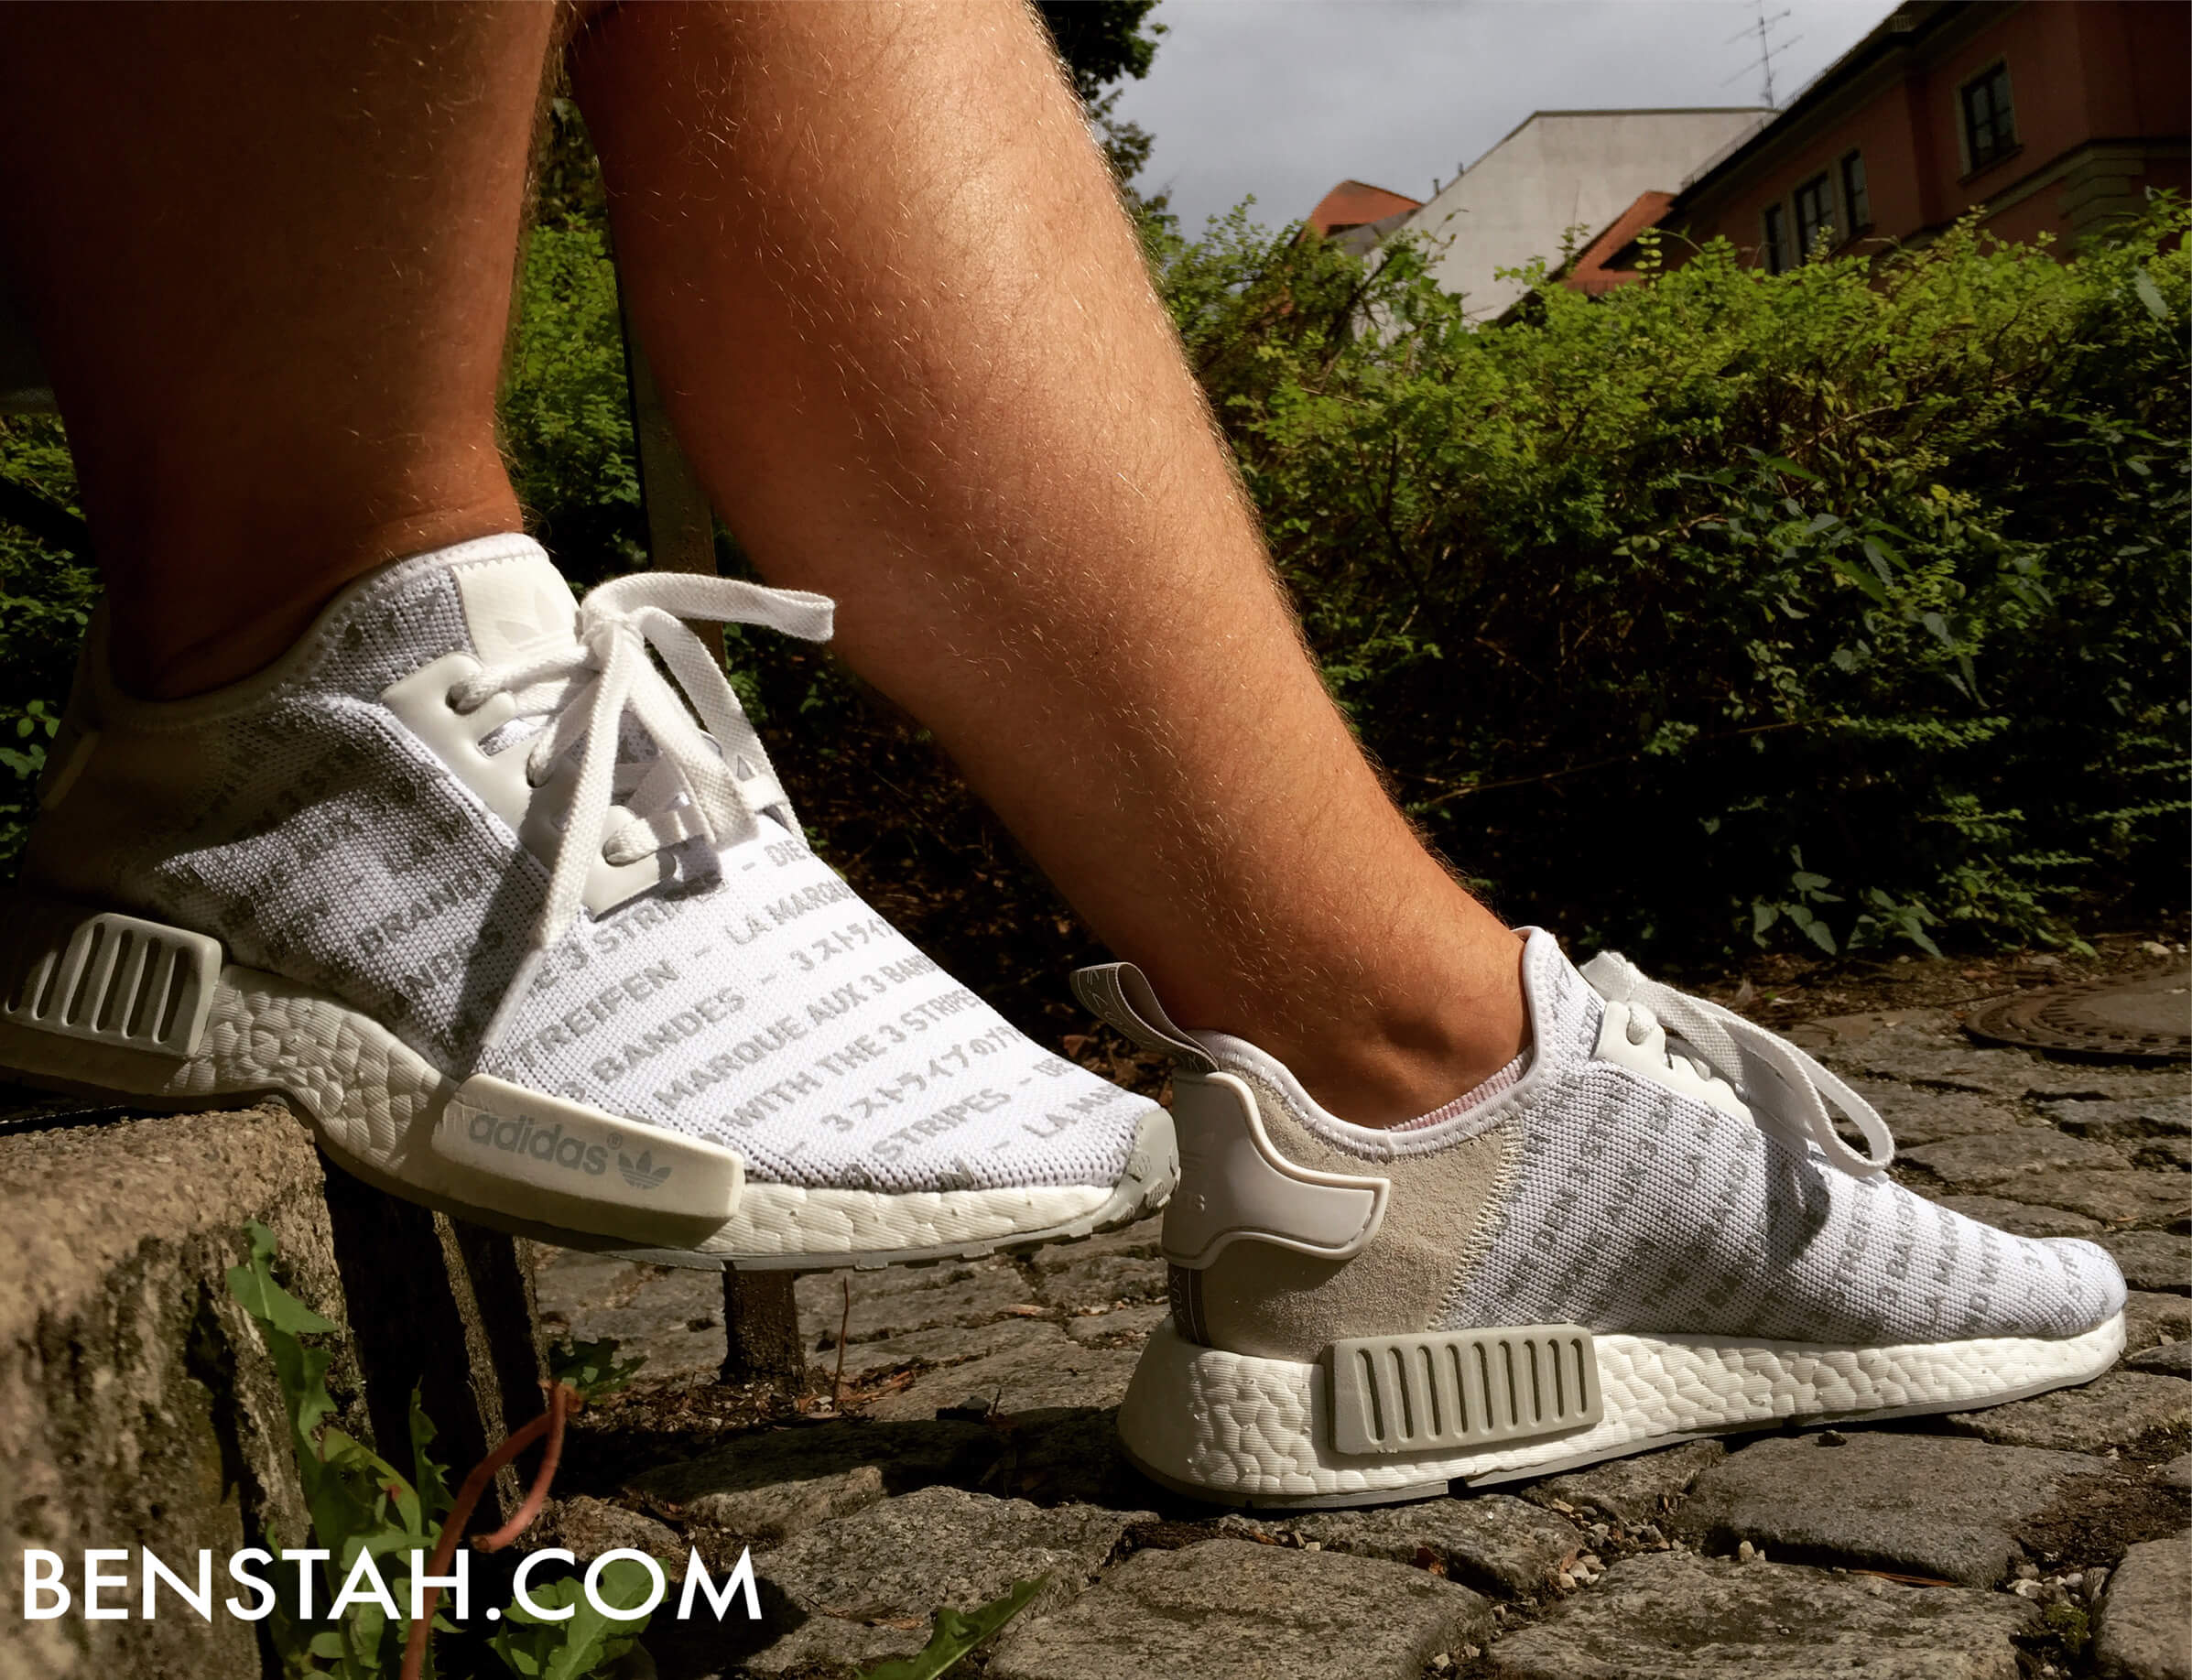 adidas-nmd-r1-whiteout-rear-view-benstah-onfeet